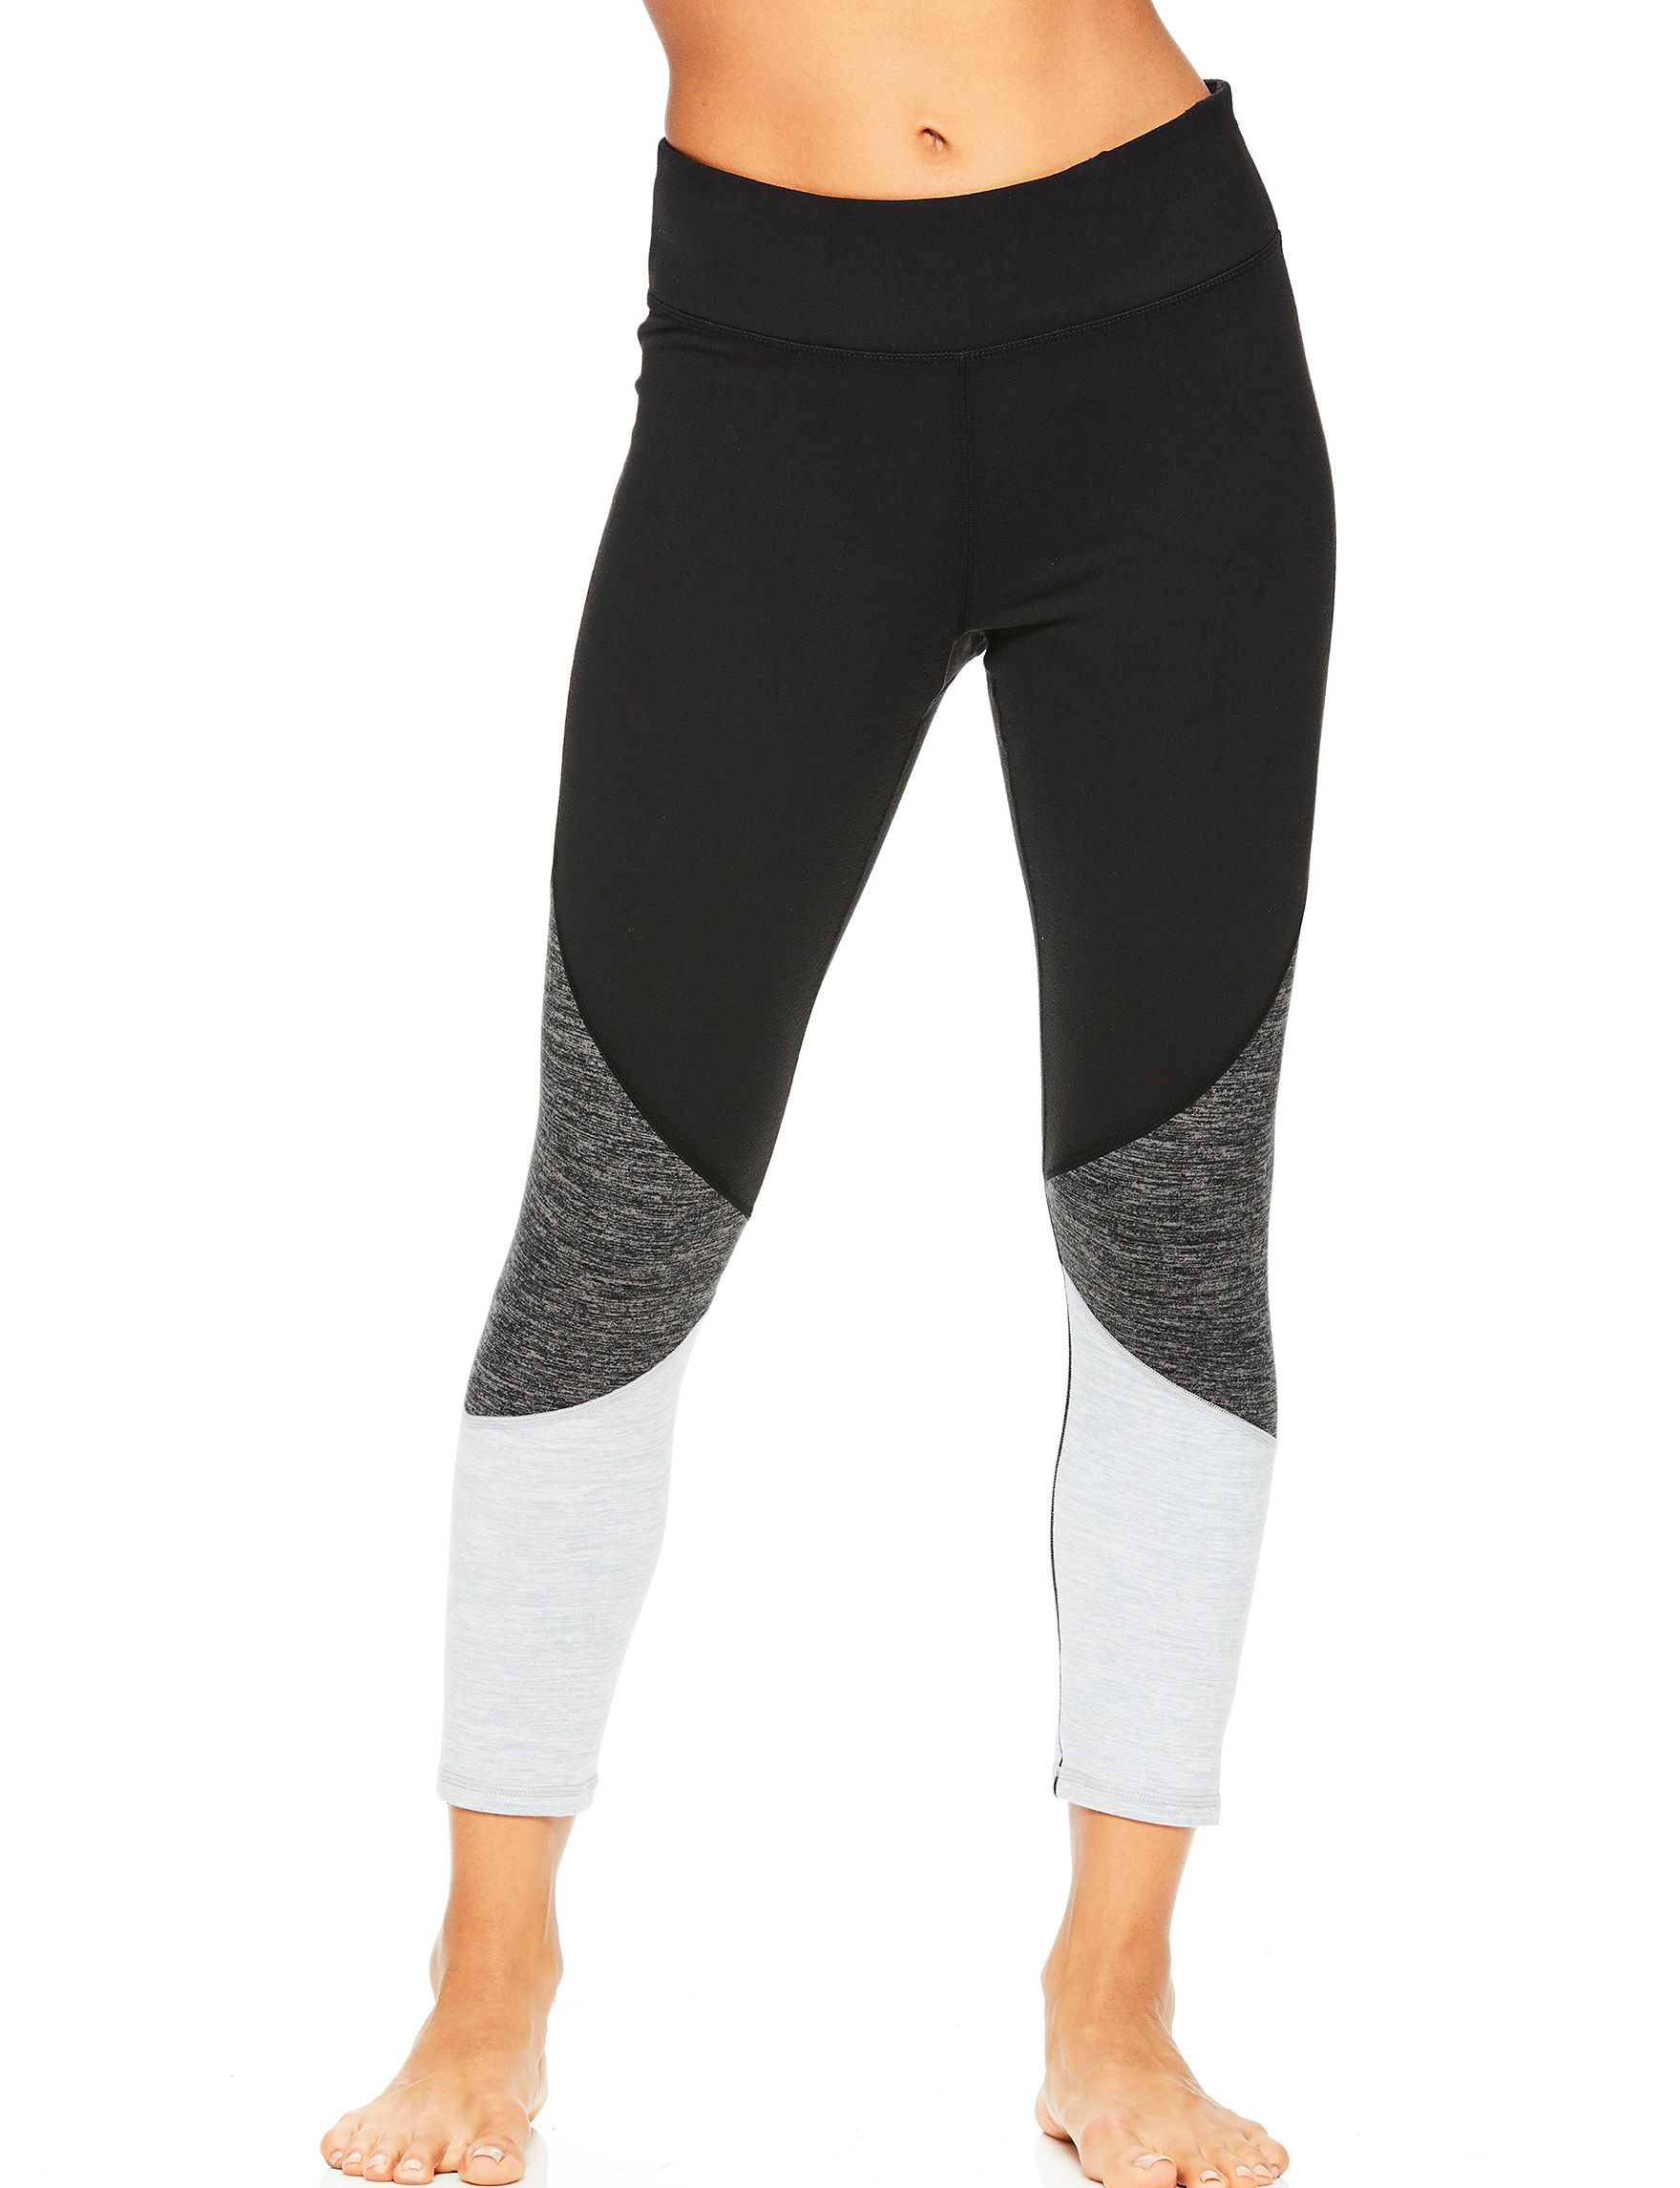 Gaiam Black Leggings